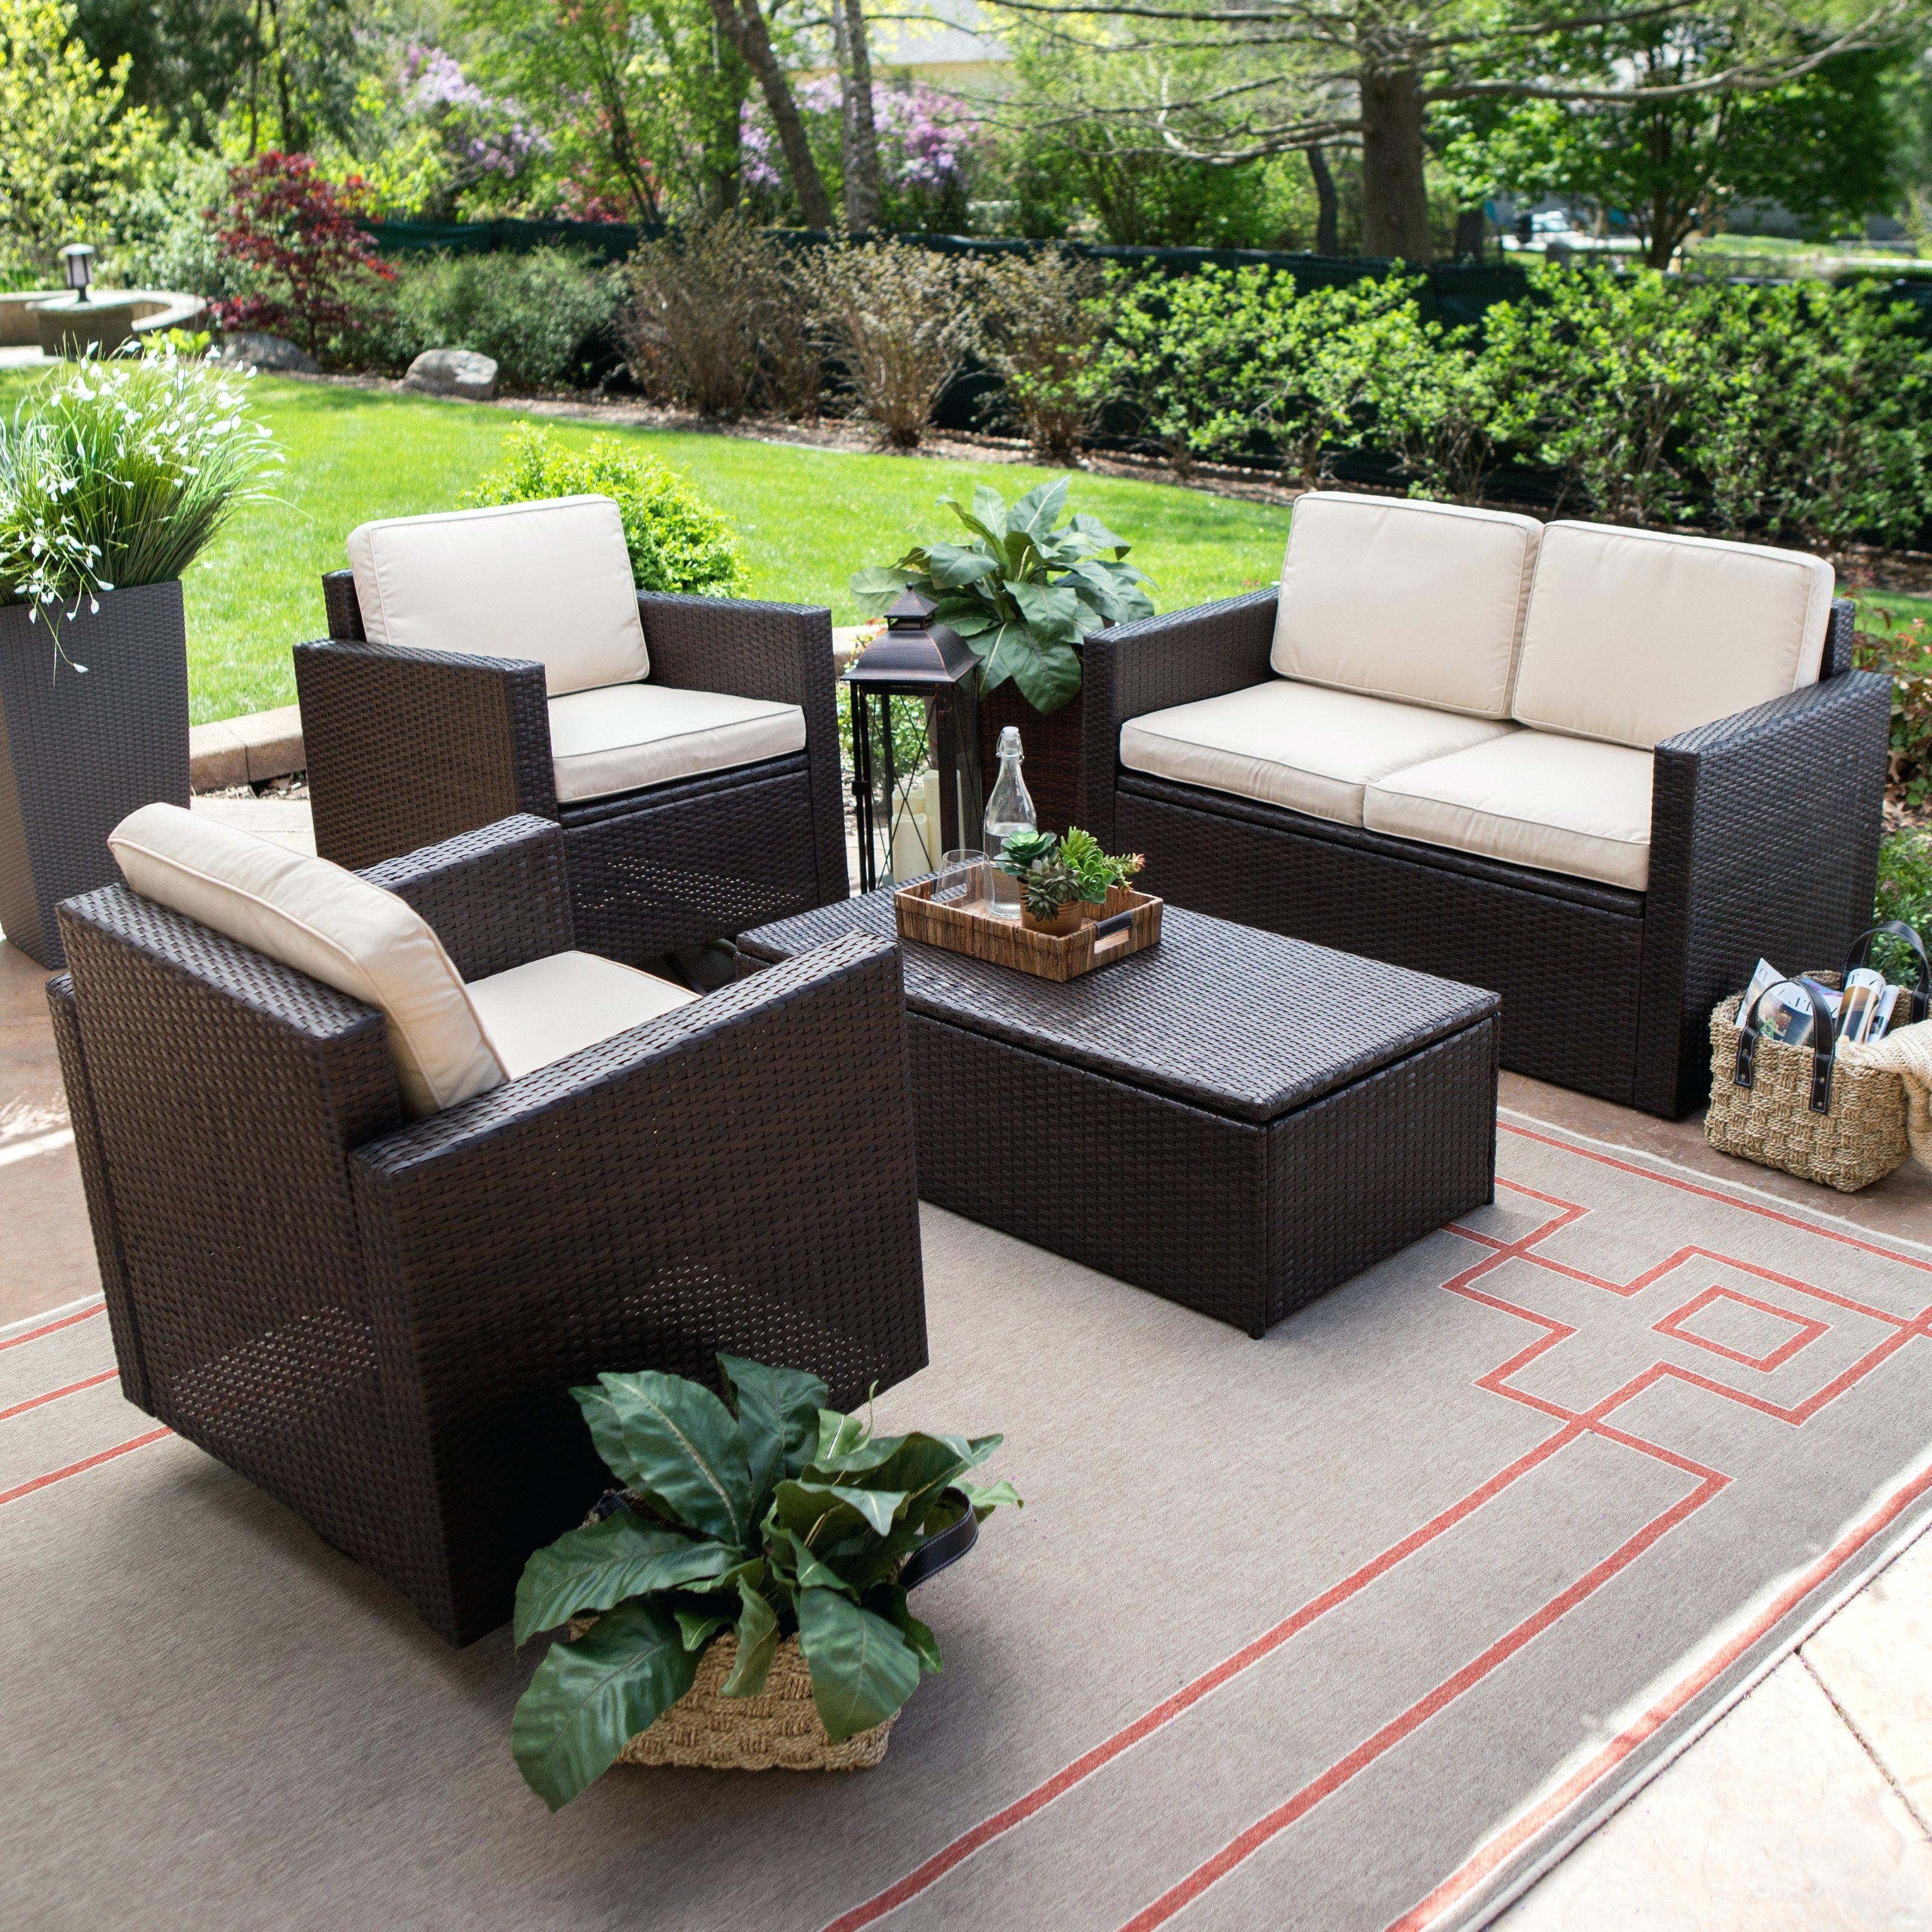 Well Liked Patio Conversation Sets Coral Coast Wicker 4 Piece Conversation Set Pertaining To Outdoor Patio Furniture Conversation Sets (View 20 of 20)